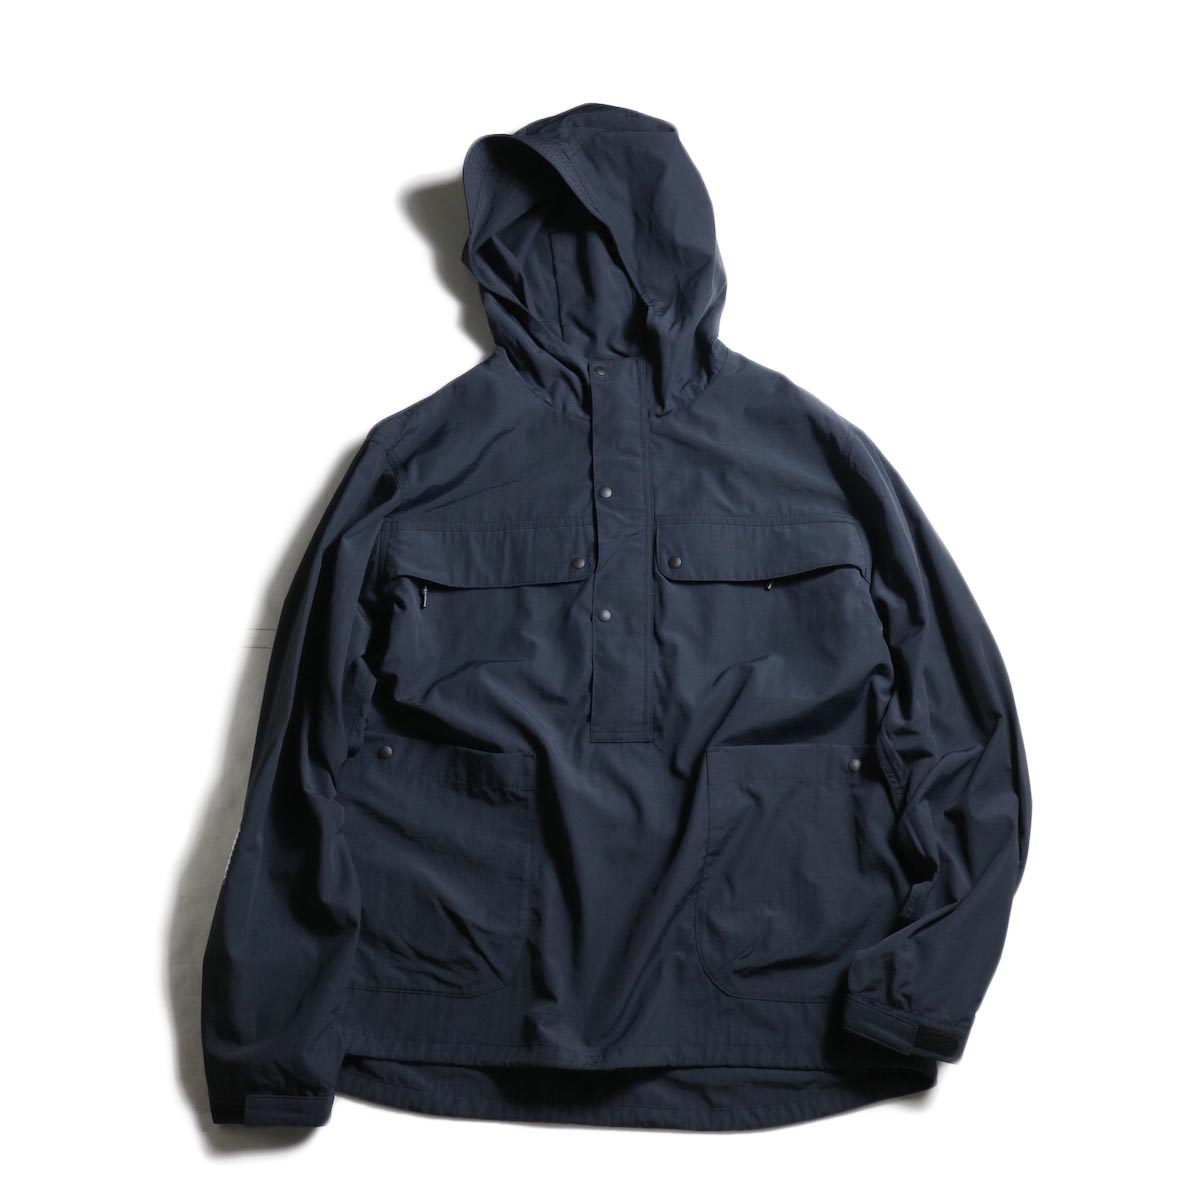 DESCENTE ddd /  PULLOVER JACKET (Black)